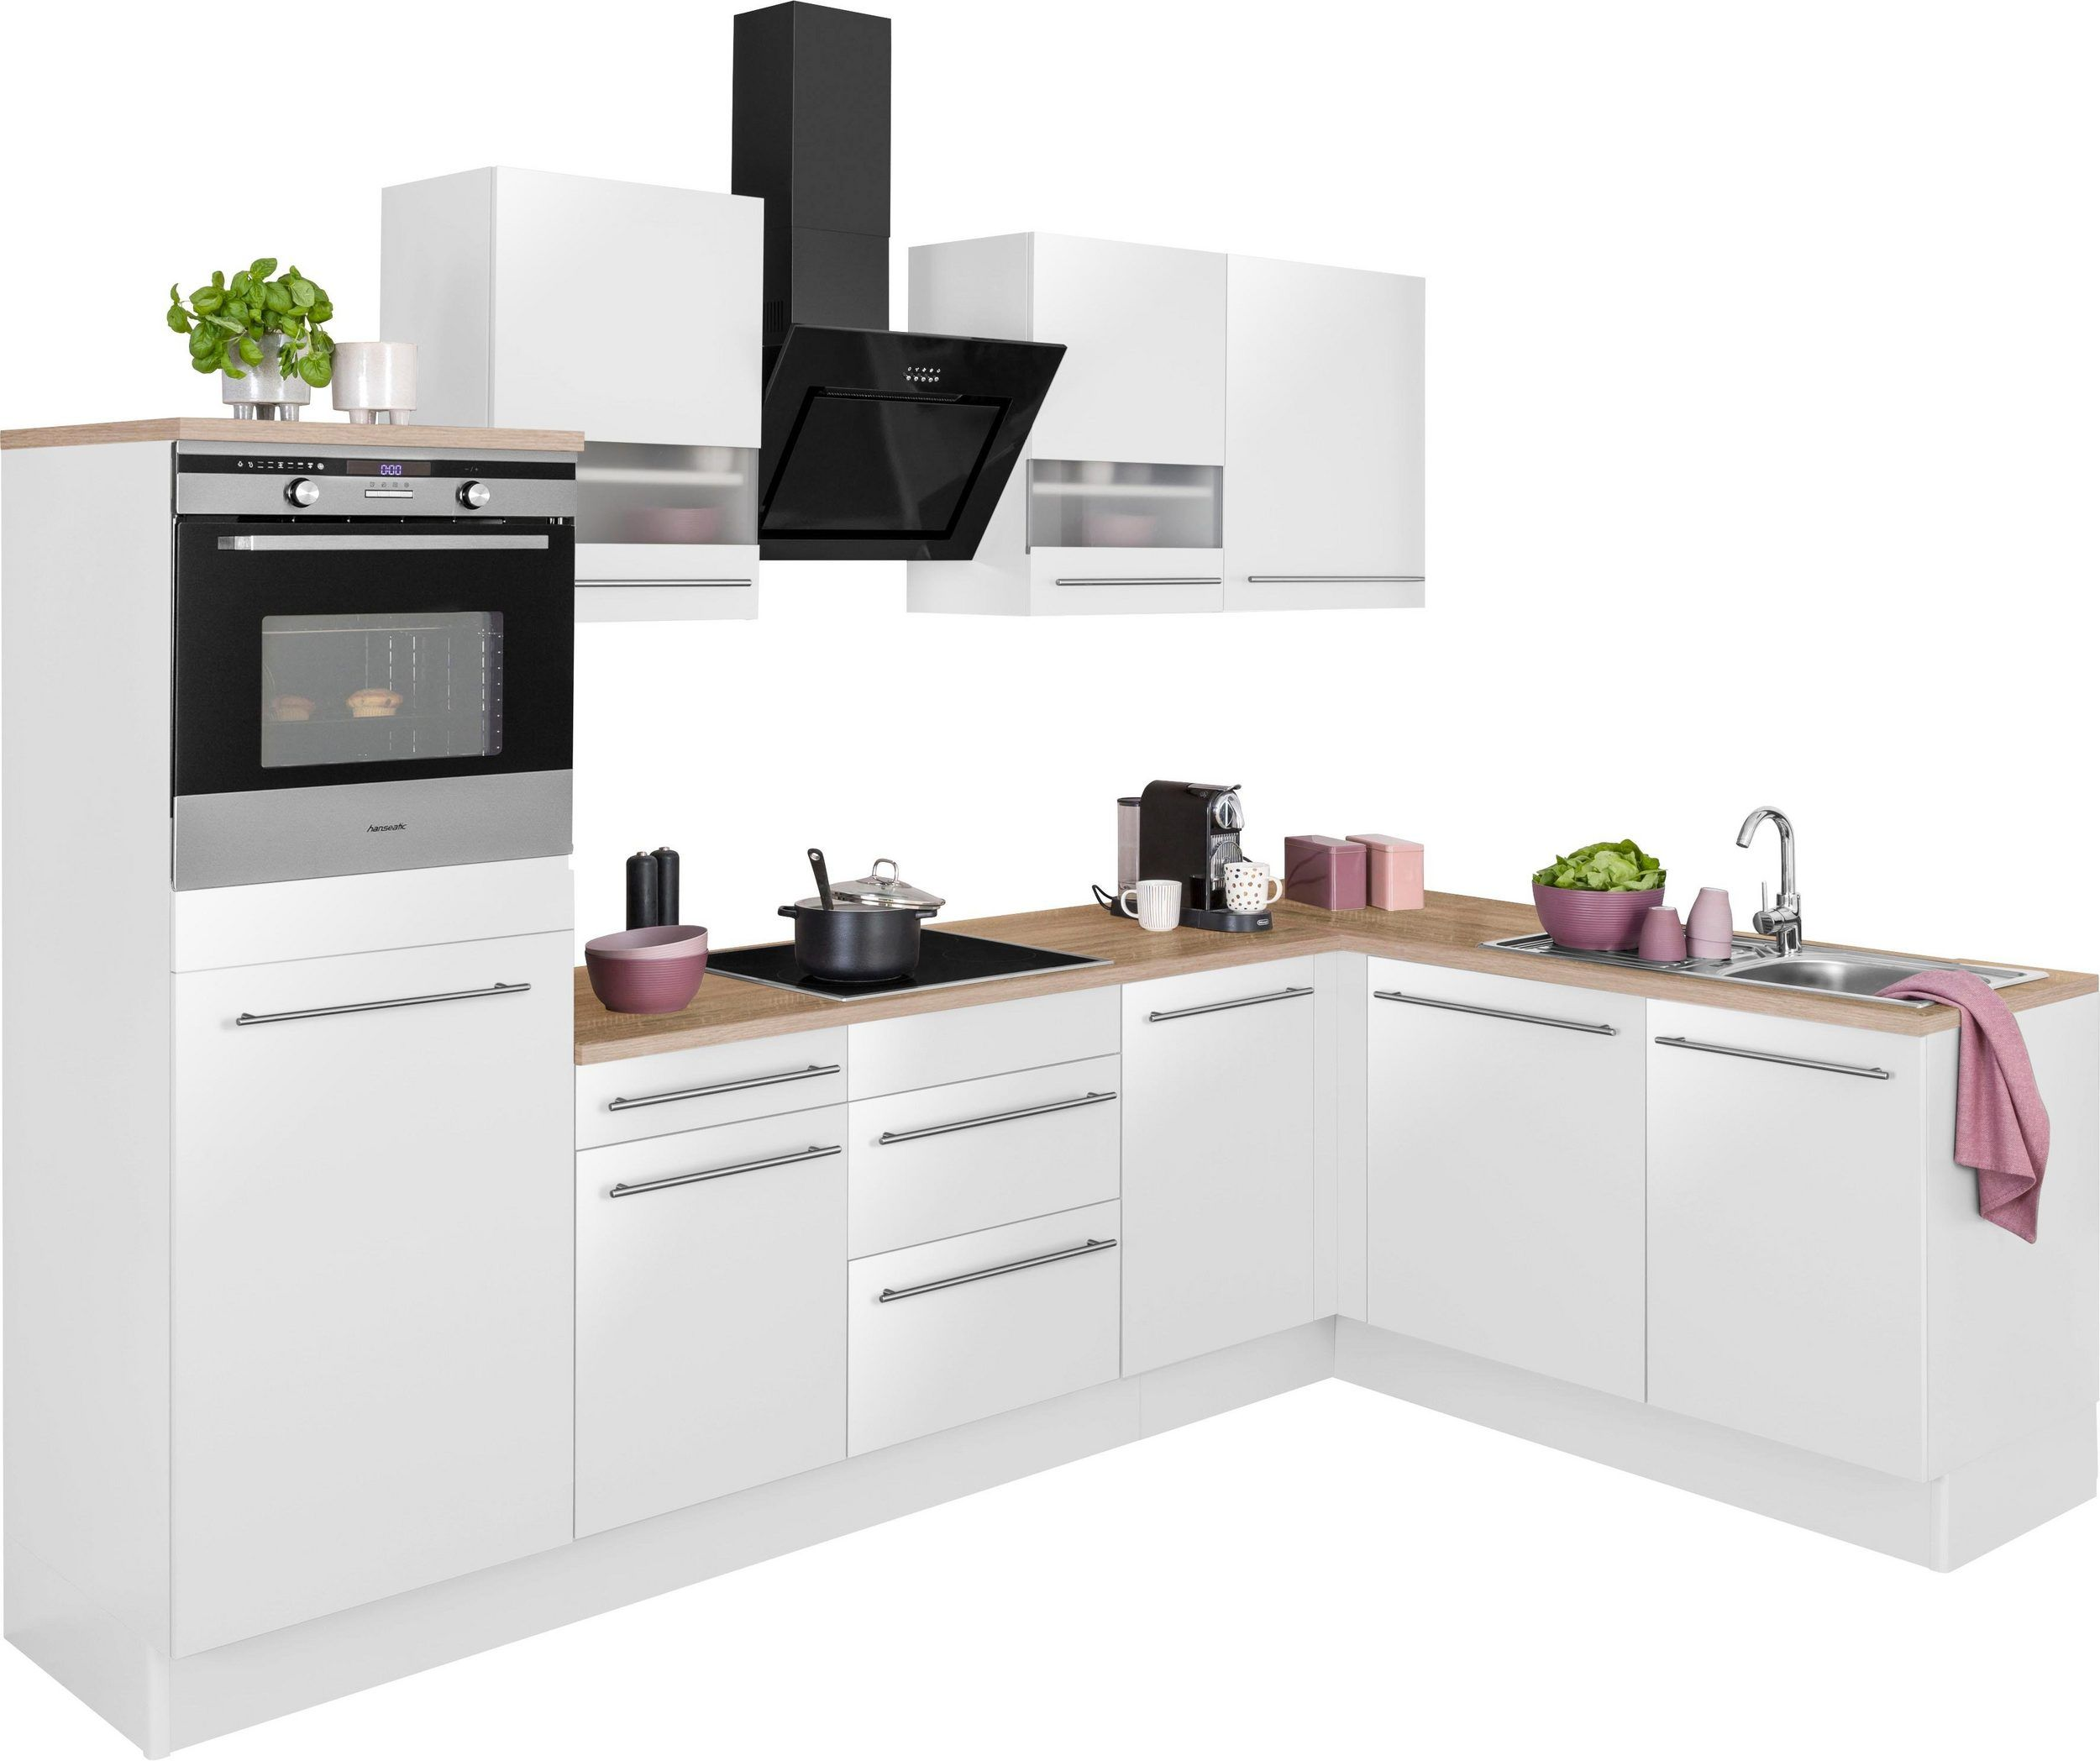 Optifit Winkelkuche Kitchen Cabinet L Shape Held Schrank Kuche